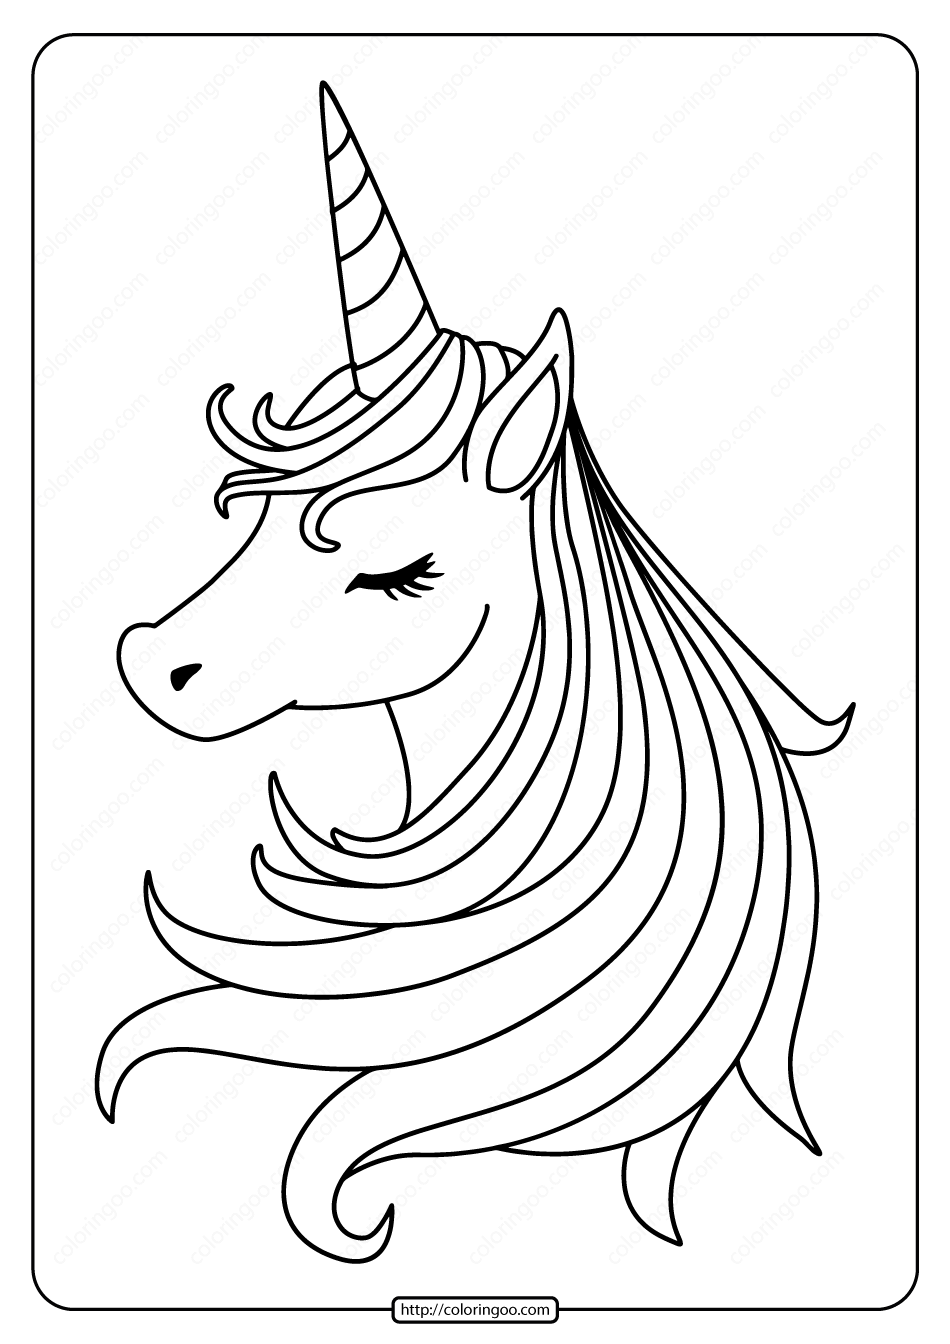 toddler kids coloring pages pdf free printable sleeping unicorn pdf coloring page kids toddler pdf coloring pages